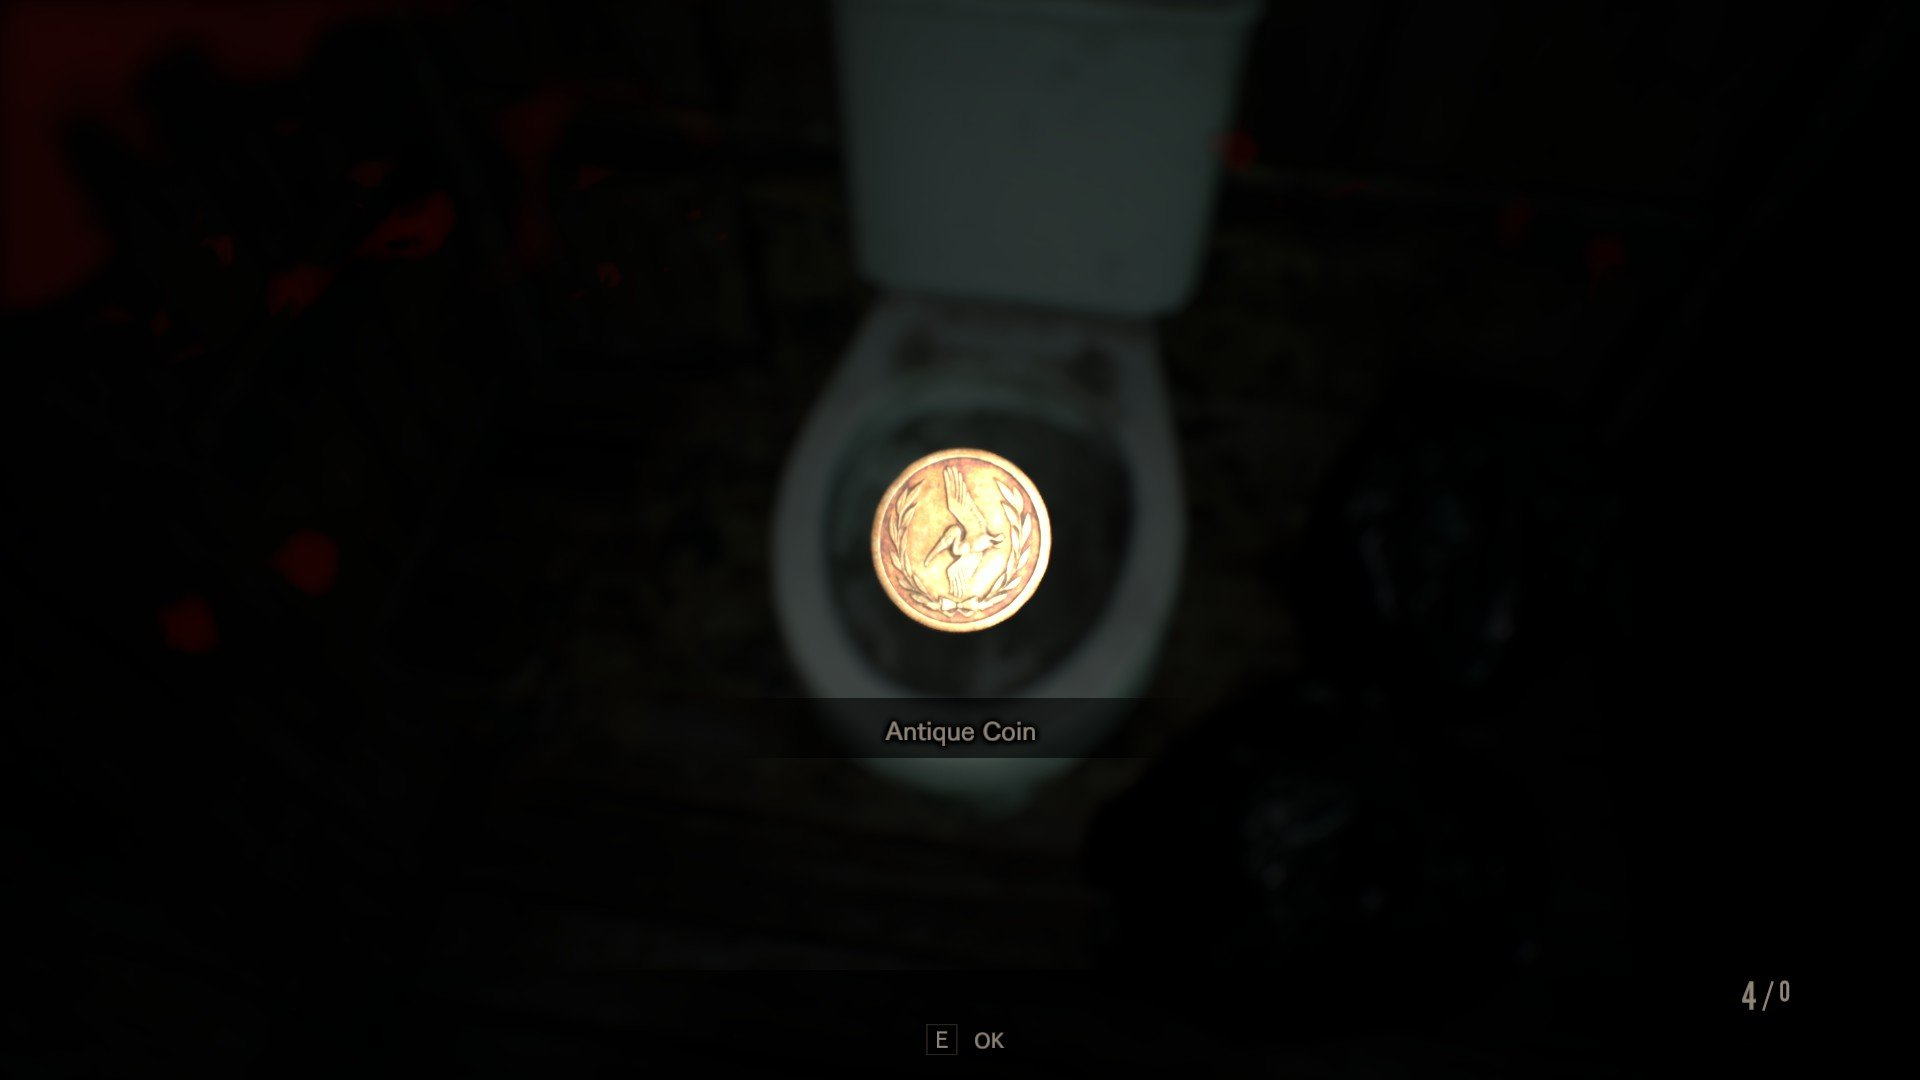 Resident Evil 7 Biohazard All Antique Coin Locations